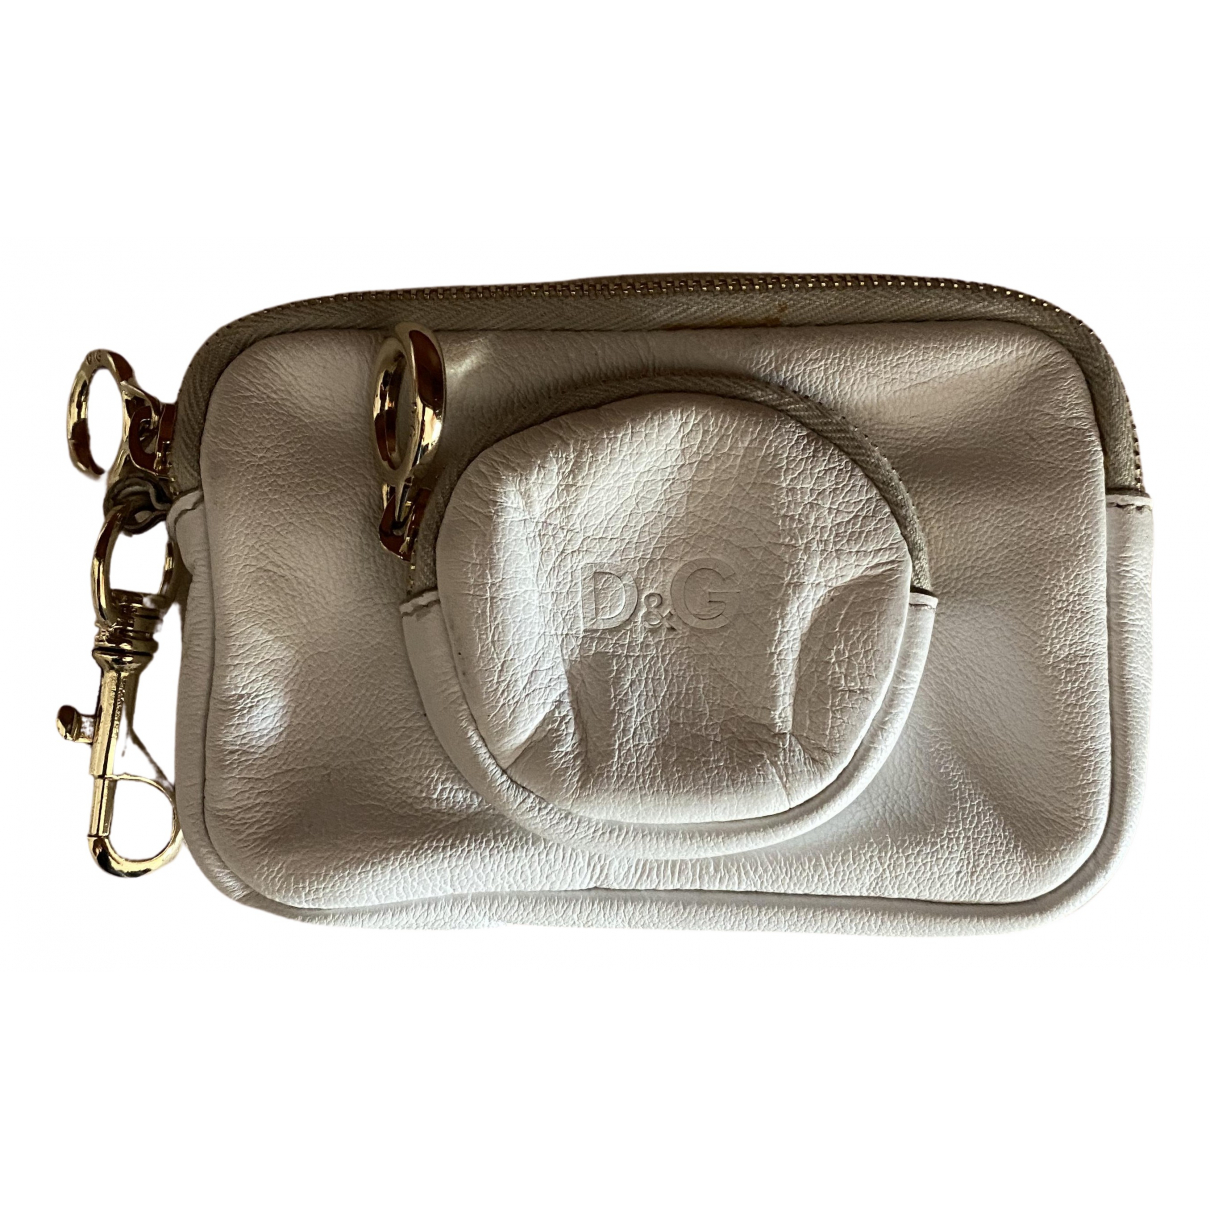 D&g N White Leather Purses, wallet & cases for Women N